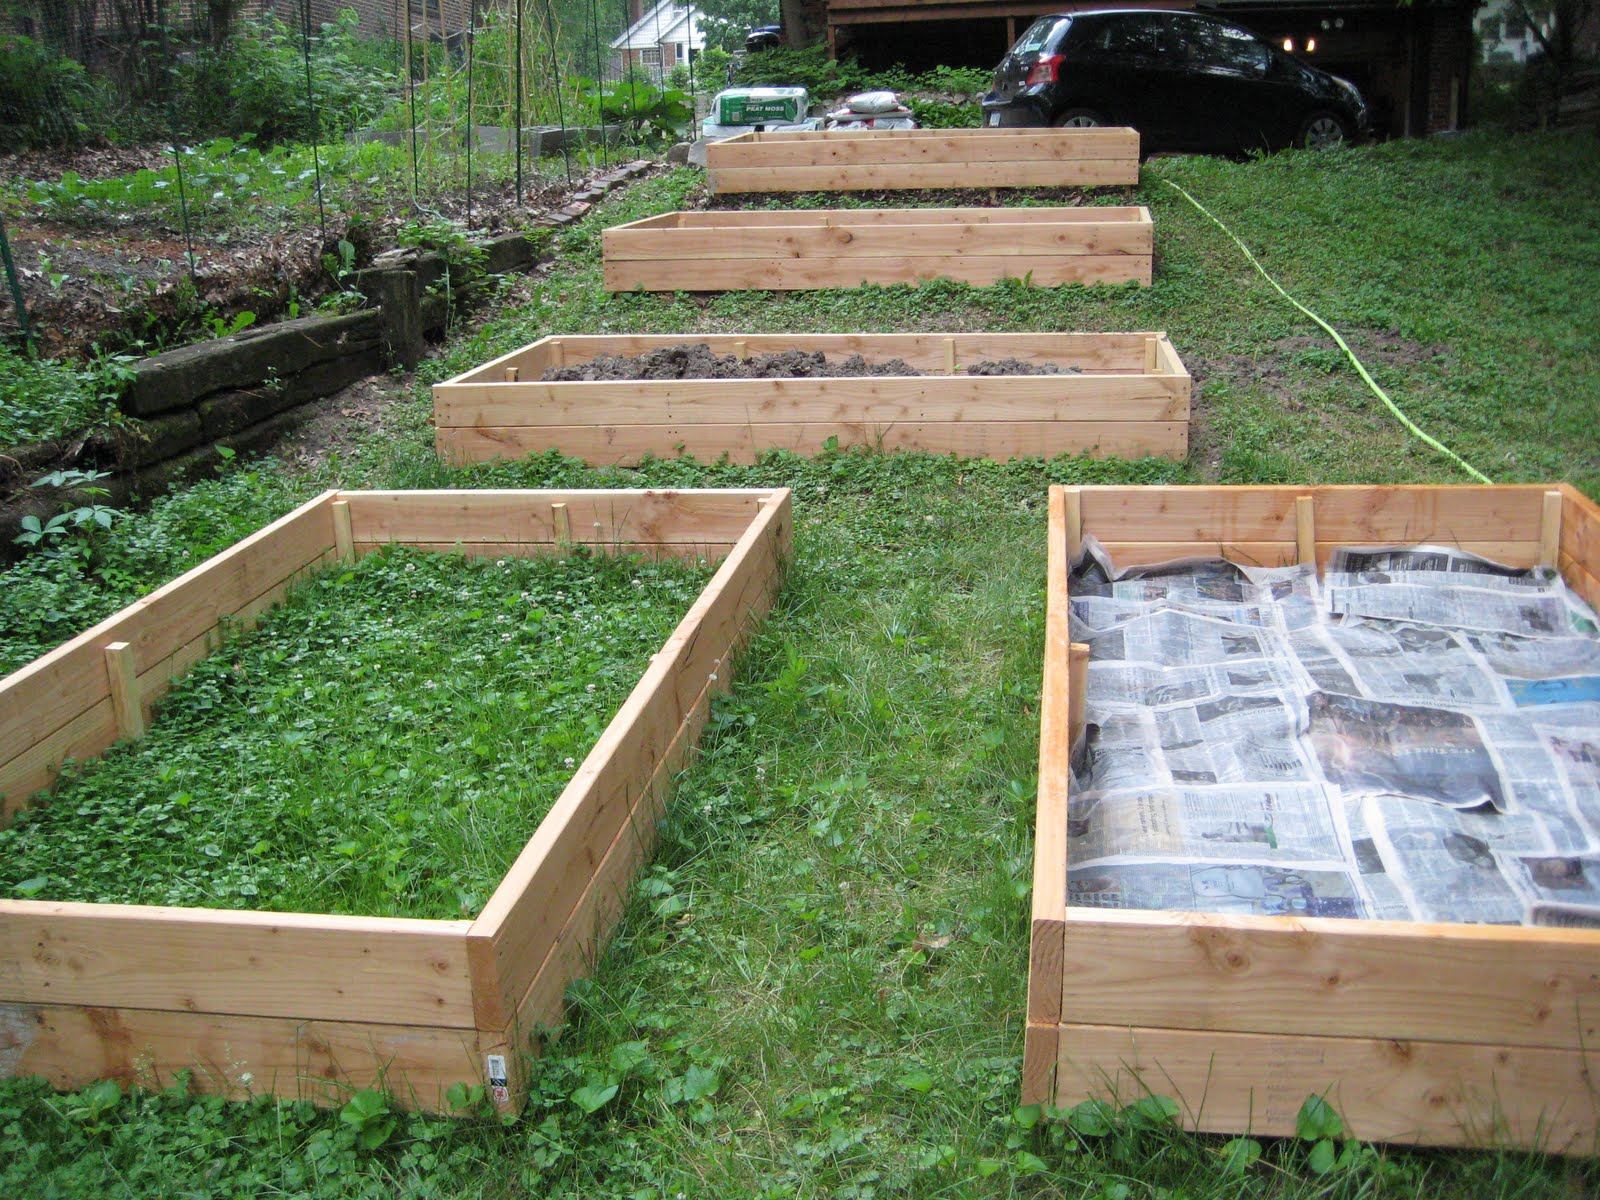 How To Build Elevated Garden Beds | Home Design and Decor ...